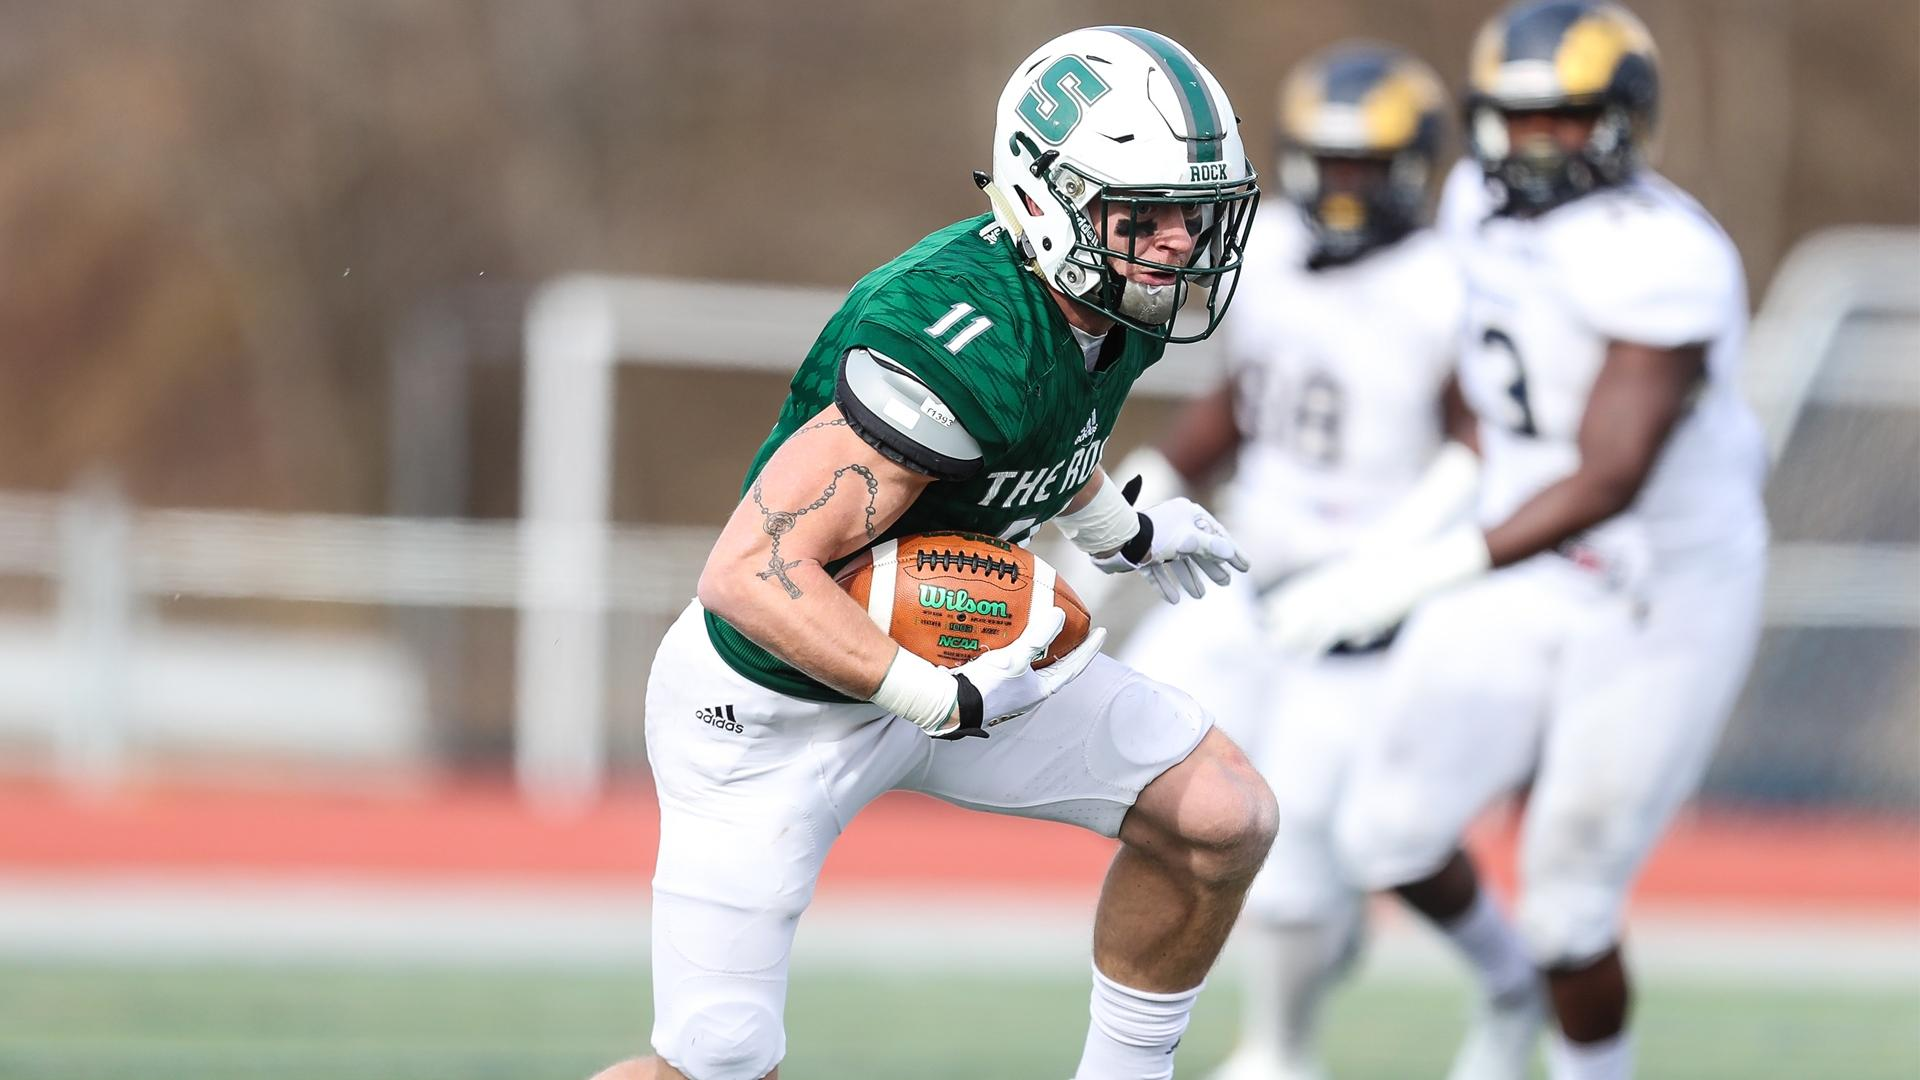 Henry Litwin is a preseason DII football All American.